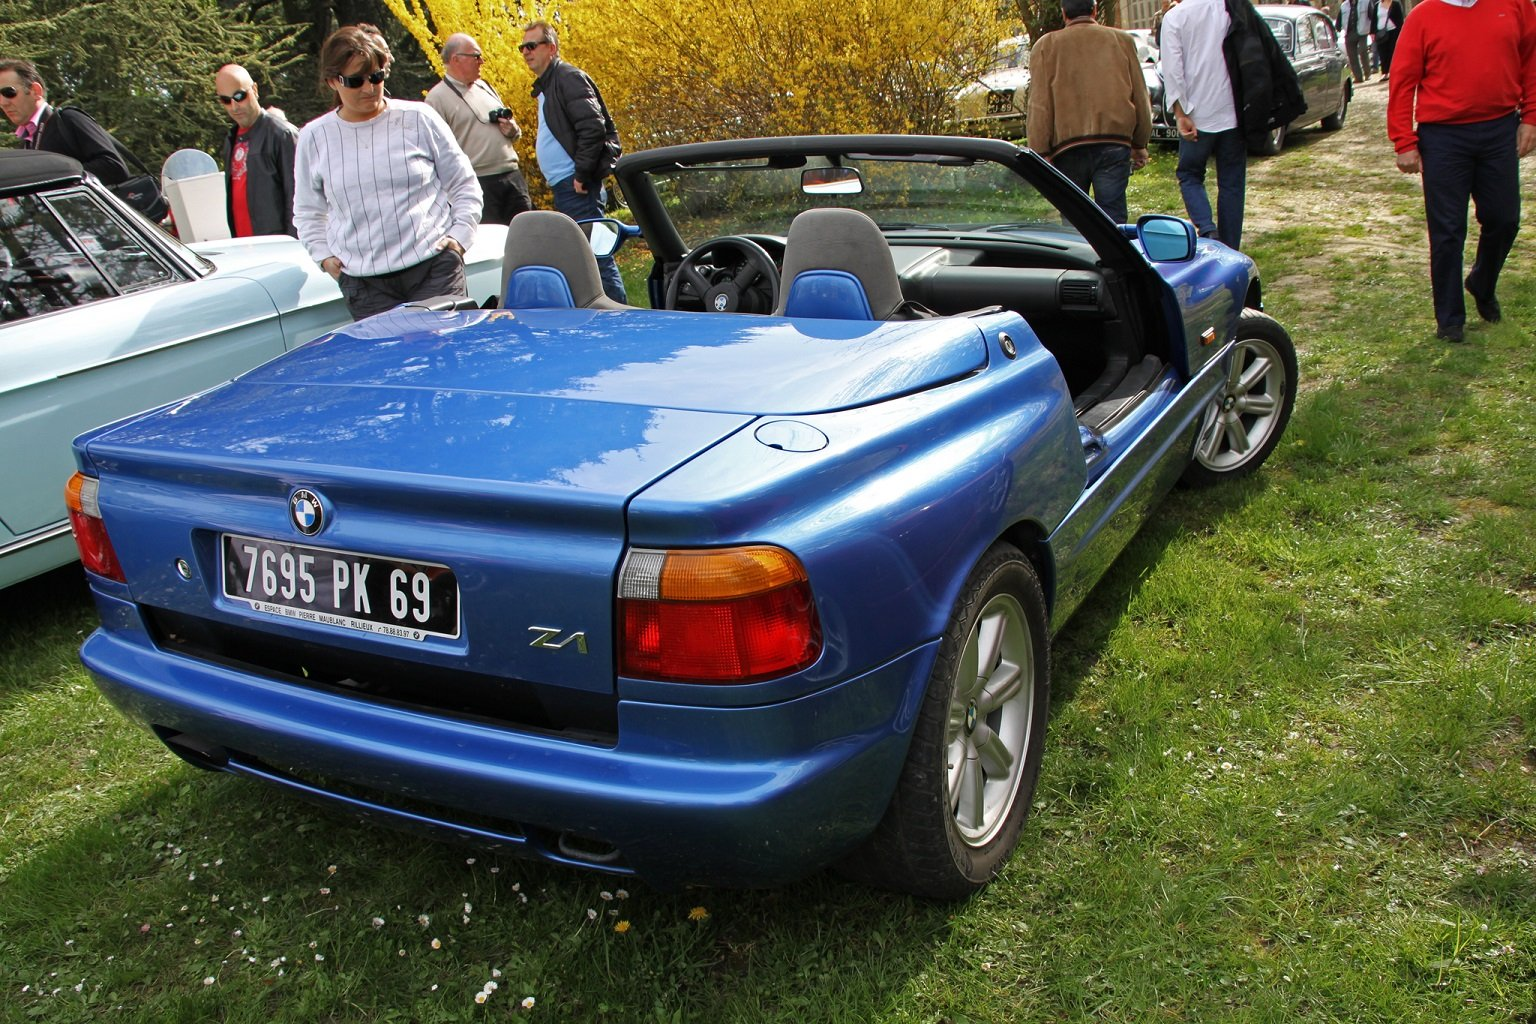 bmw z1 convertible 1988 wallpaper 1536x1024 410878 wallpaperup. Black Bedroom Furniture Sets. Home Design Ideas